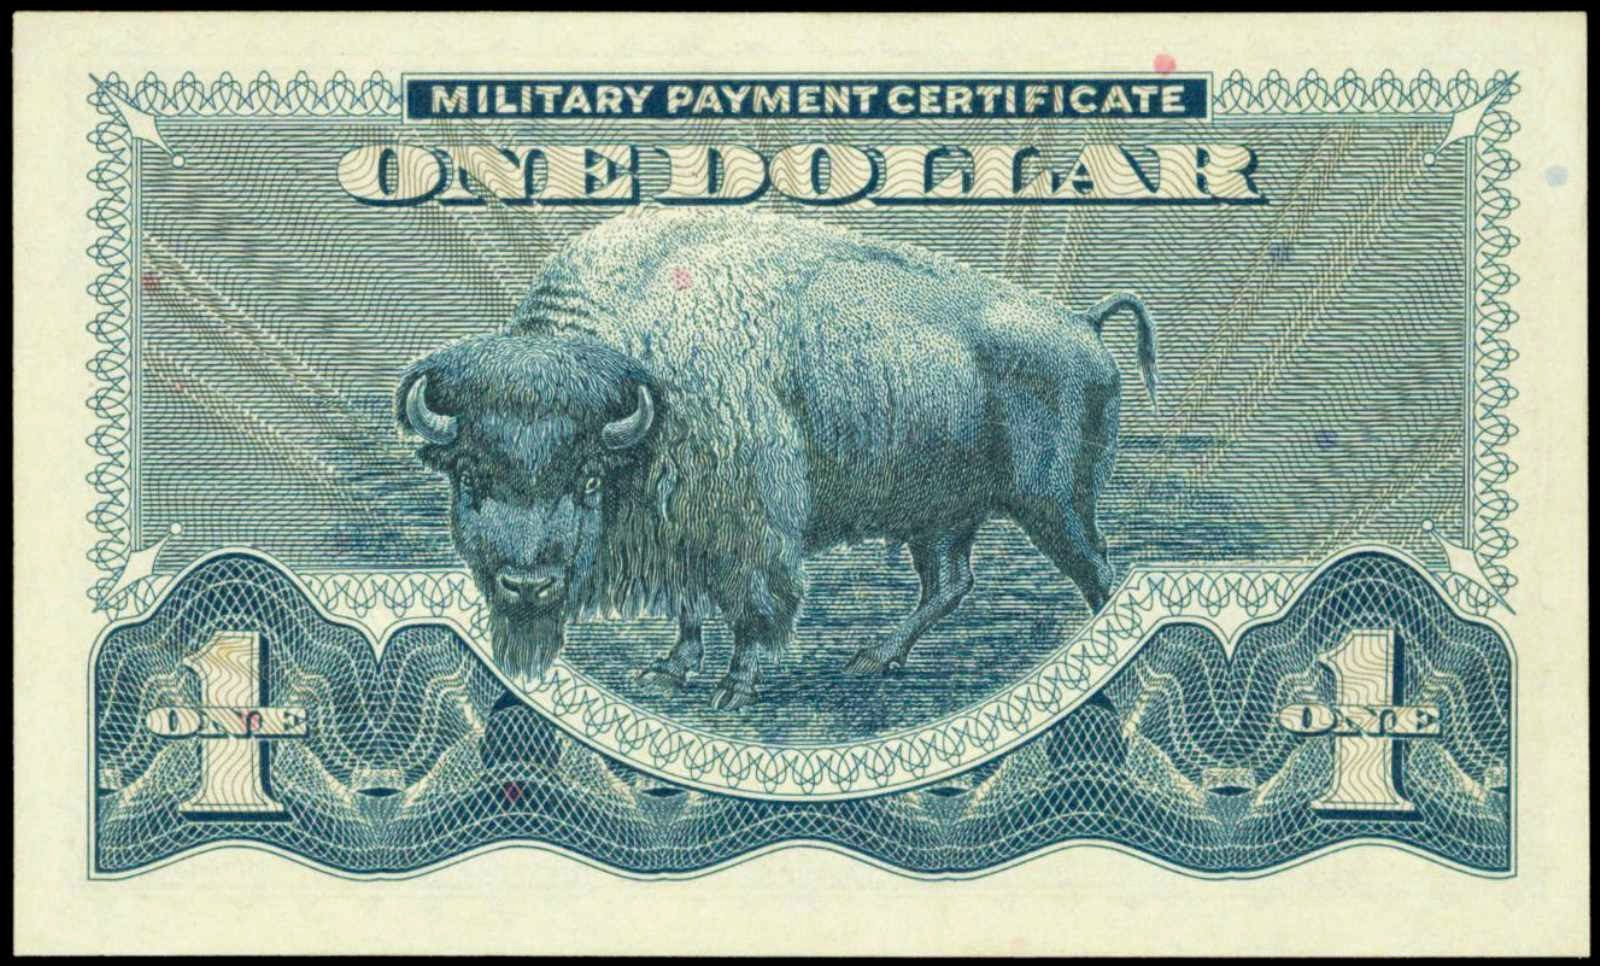 1 Dollar Military Payment Certificate US MPC Series 692